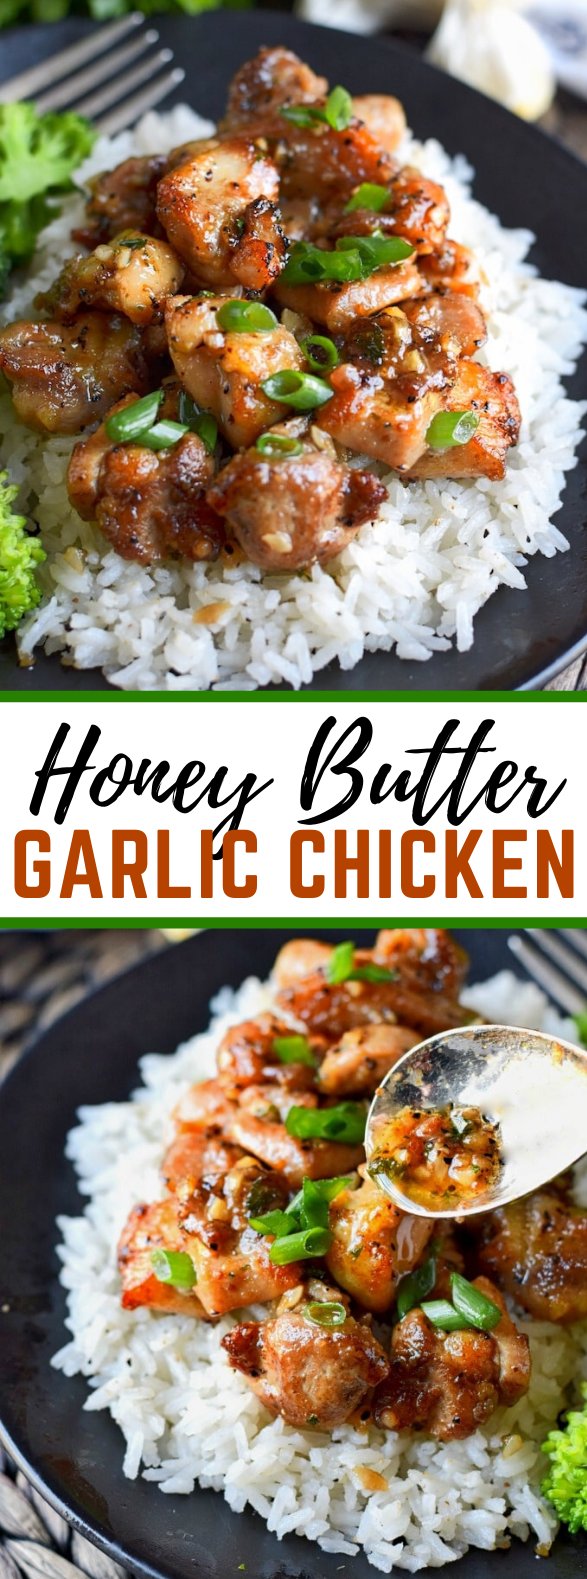 HONEY BUTTER GARLIC CHICKEN #dinner #easyrecipes